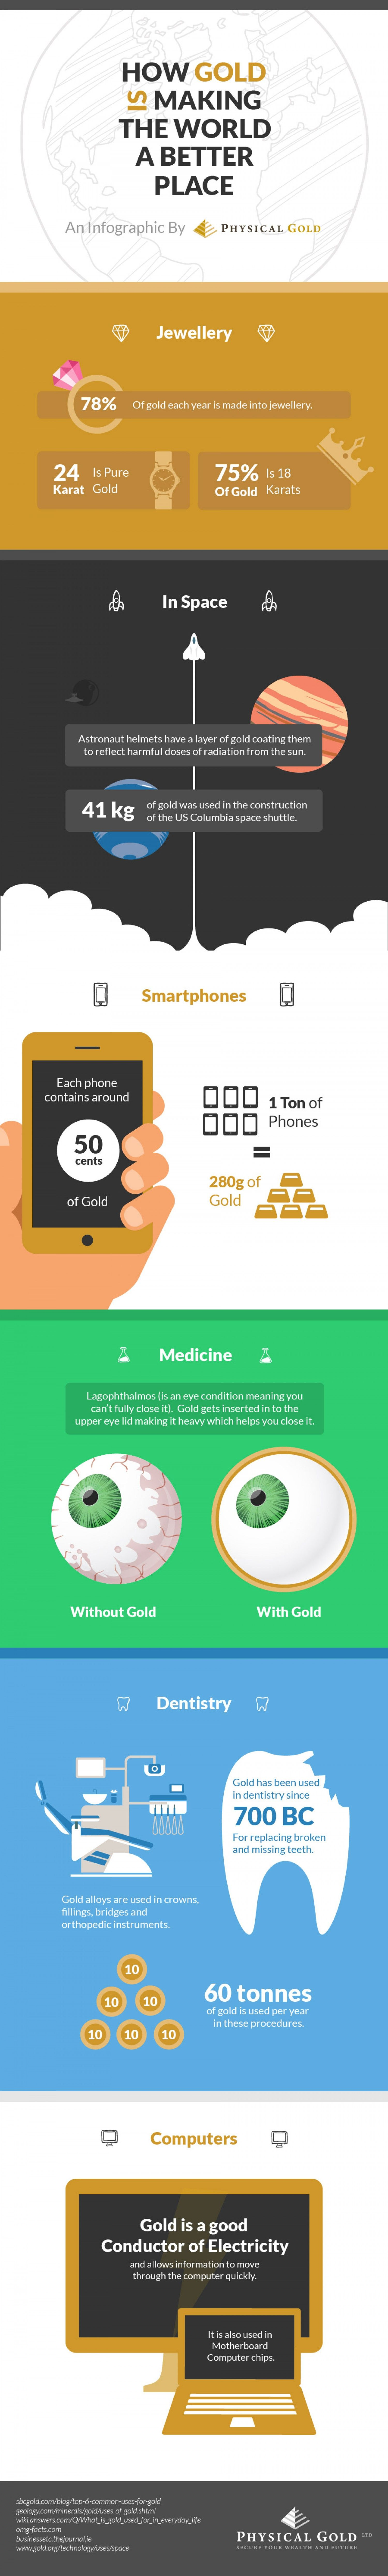 Unique Infographic Design, How Gold Is Making The World A Better Place via @hilahalpern #Infographic #Design #Gold